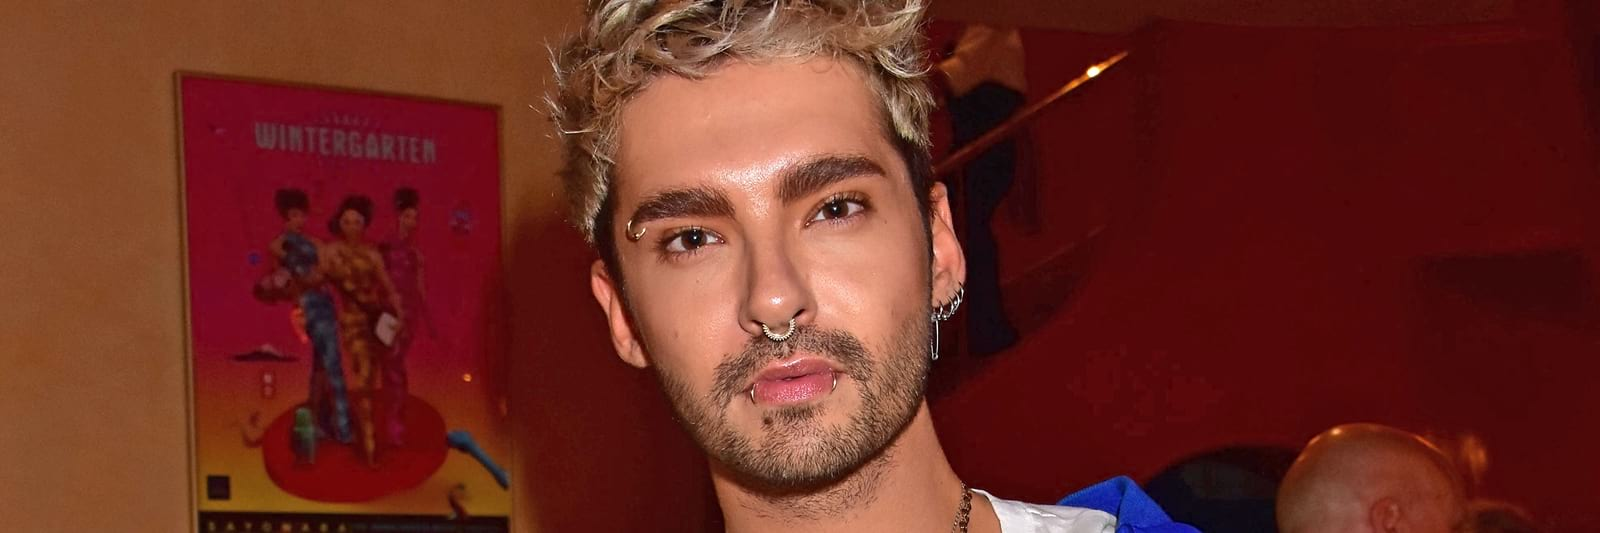 "Bill Kaulitz na festa ""The First Flush"" (11.09.2017)"